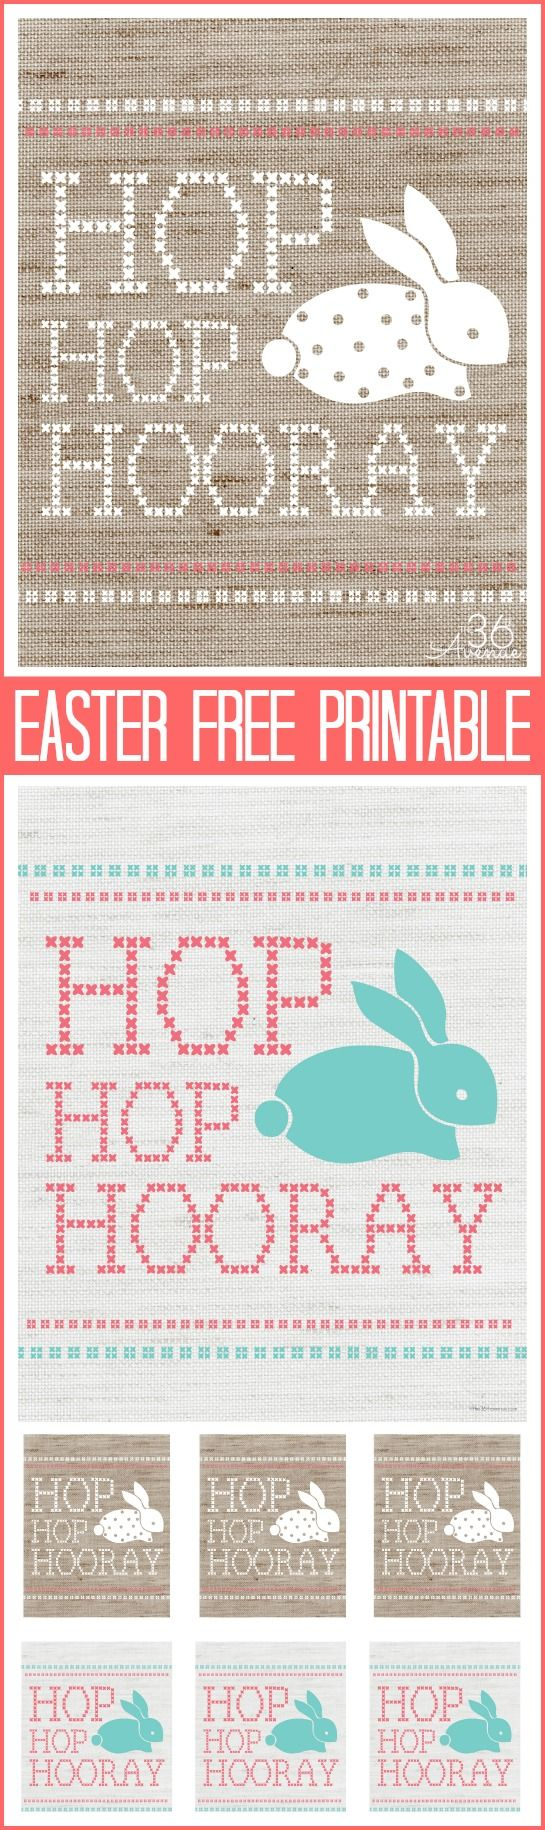 Adorable FREE Easter Printables @the36thavenue #easter #printable